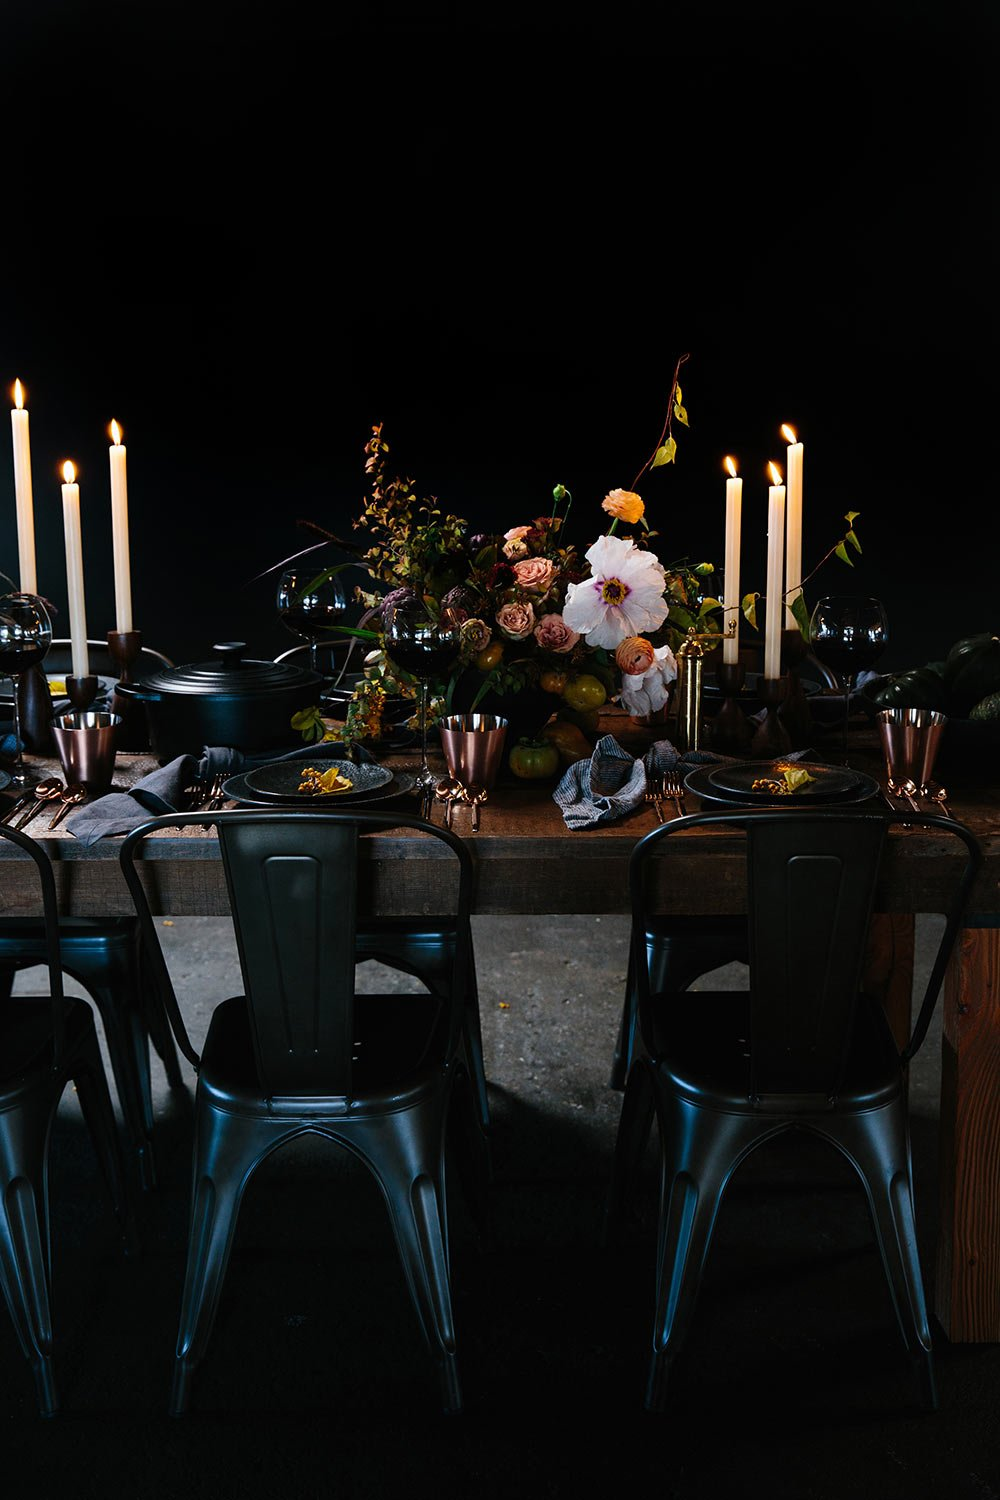 Dark wood dining table set for Thanksgiving with white taper candles, black place settings and centerpiece florals